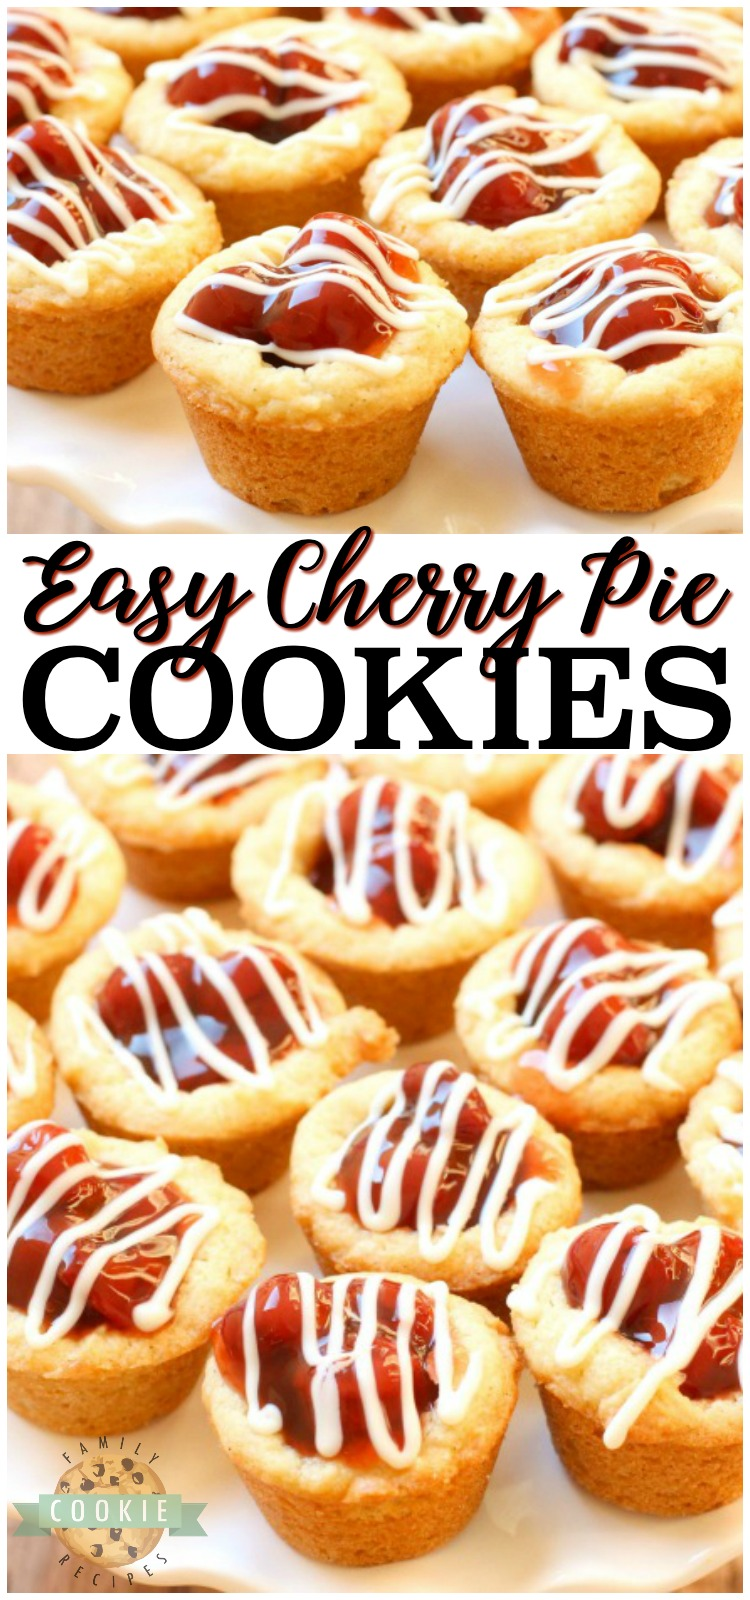 Cherry Pie Cookies are cherry pie in cookie form! Easy to make sugar cookies filled with sweet cherries and drizzled with white chocolate. via @familycookierecipes